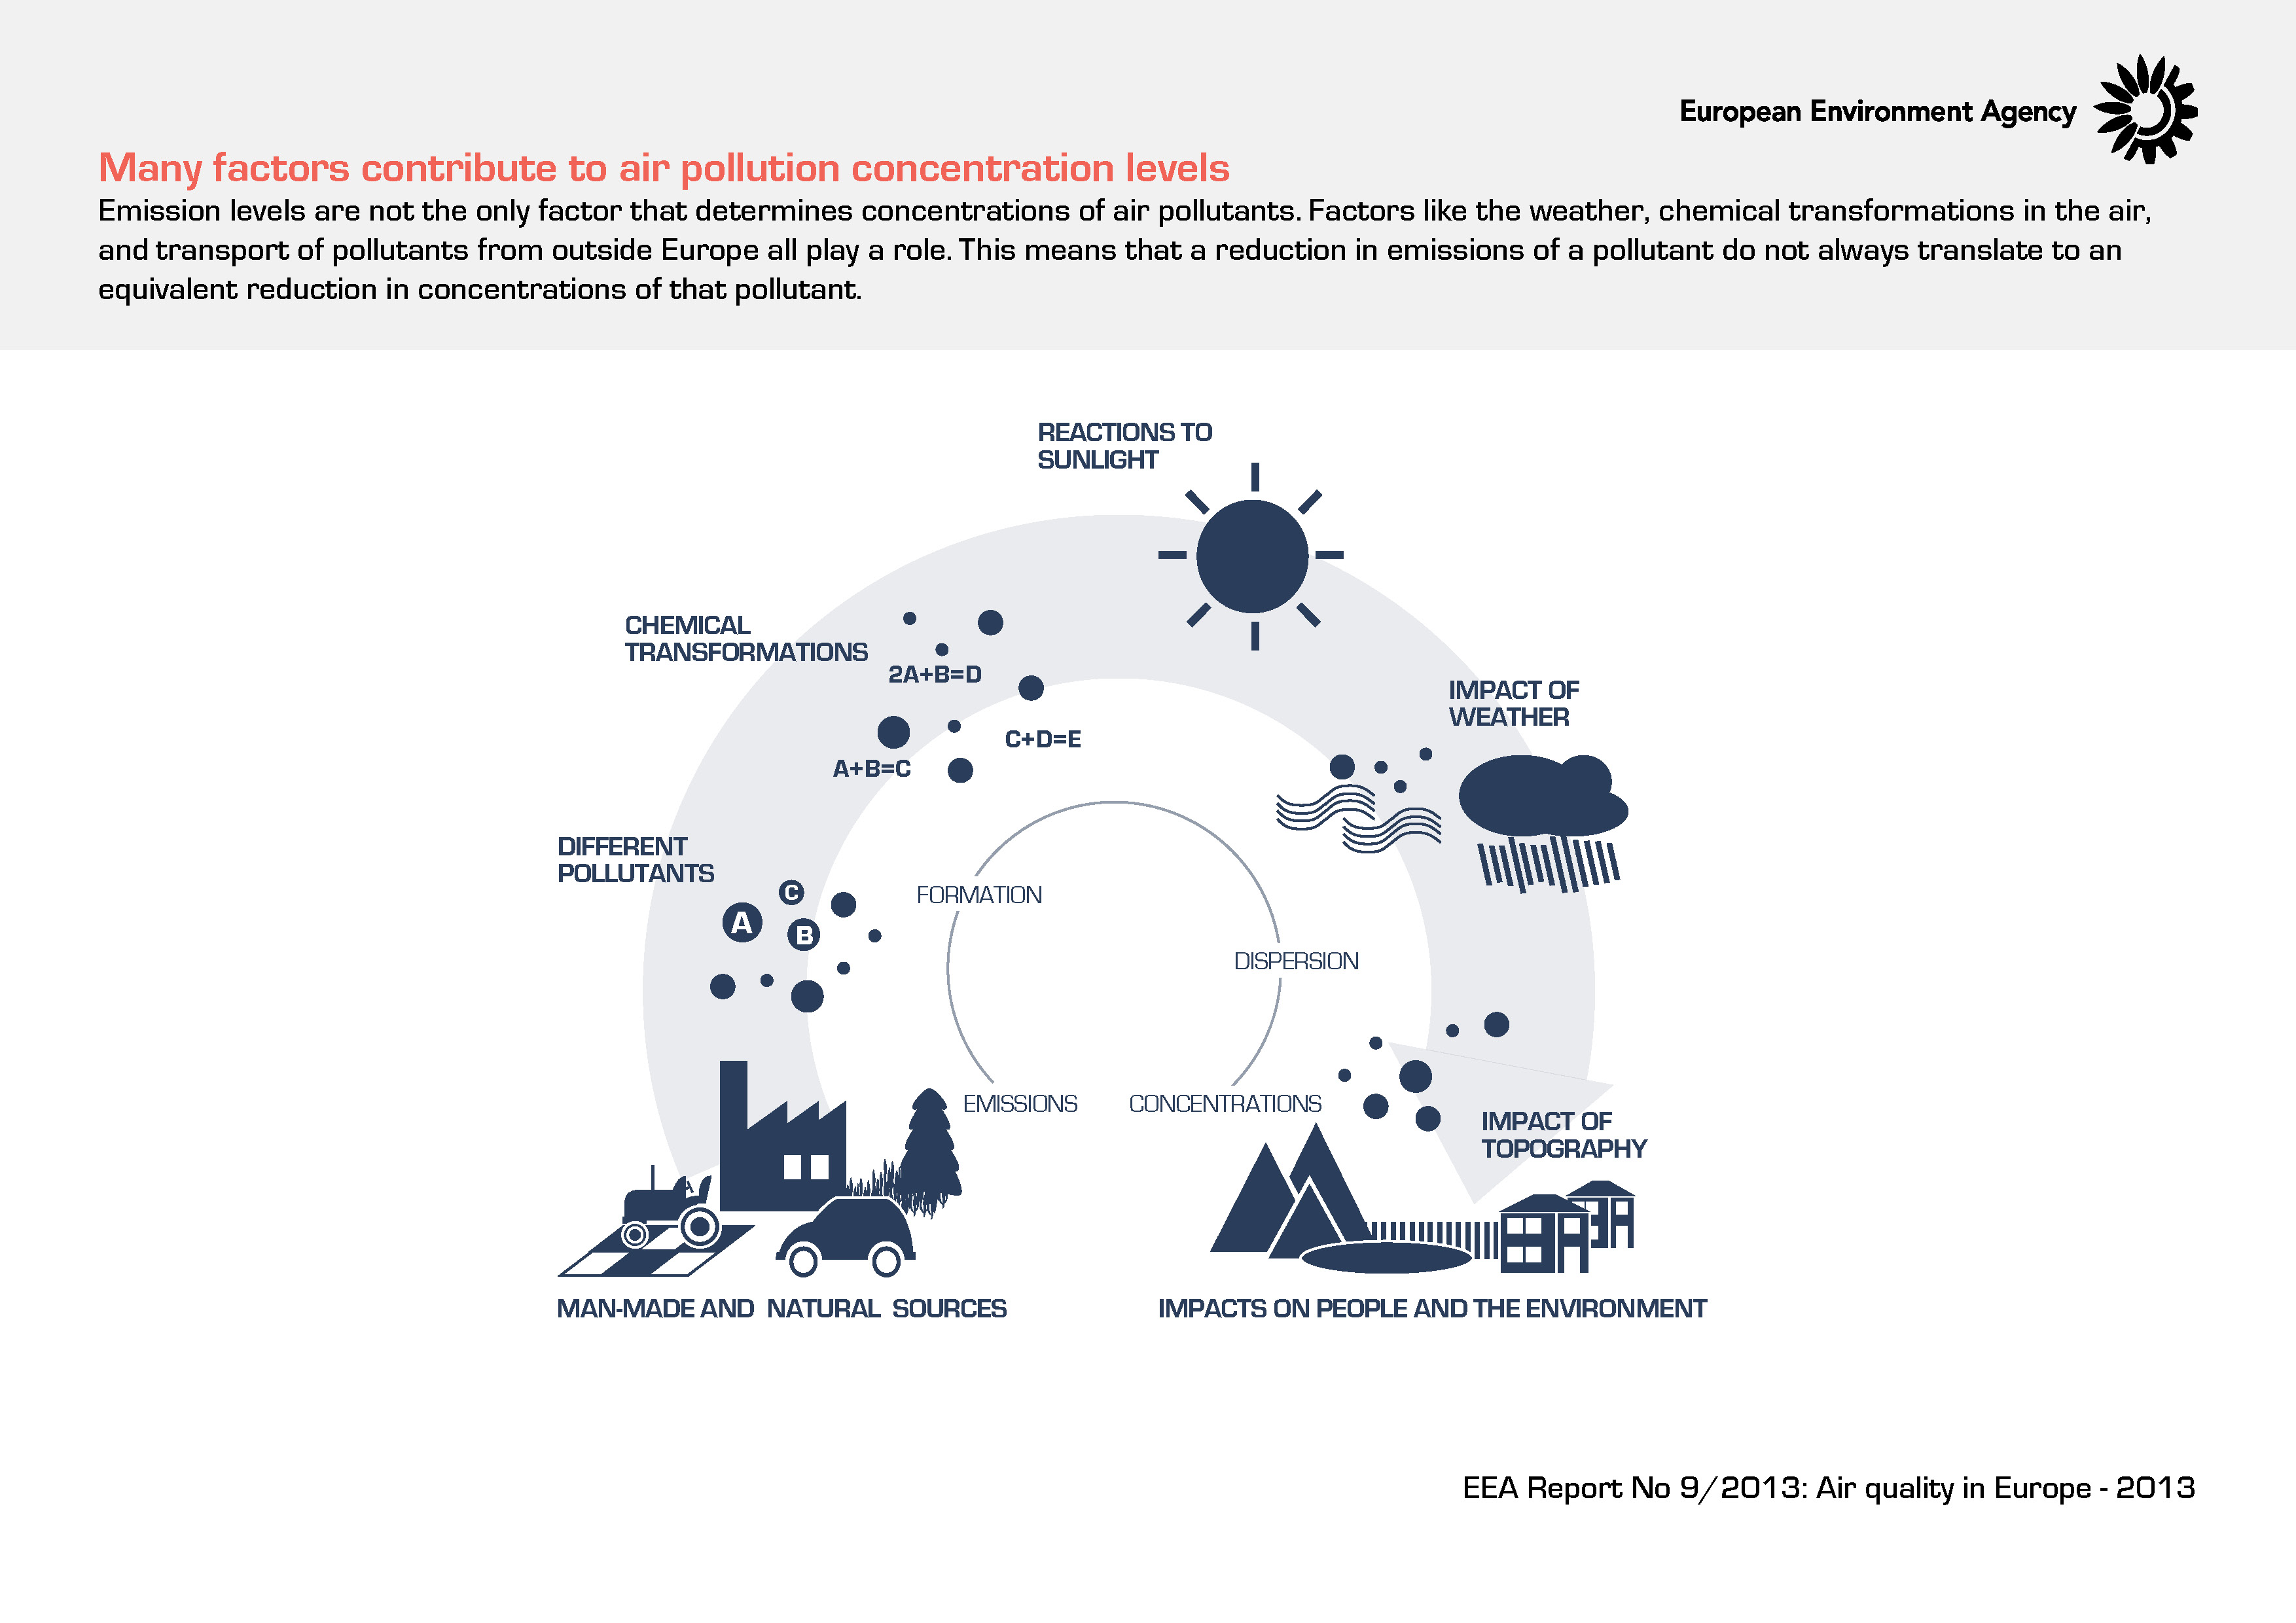 Many factors contribute to air pollution concentration levels